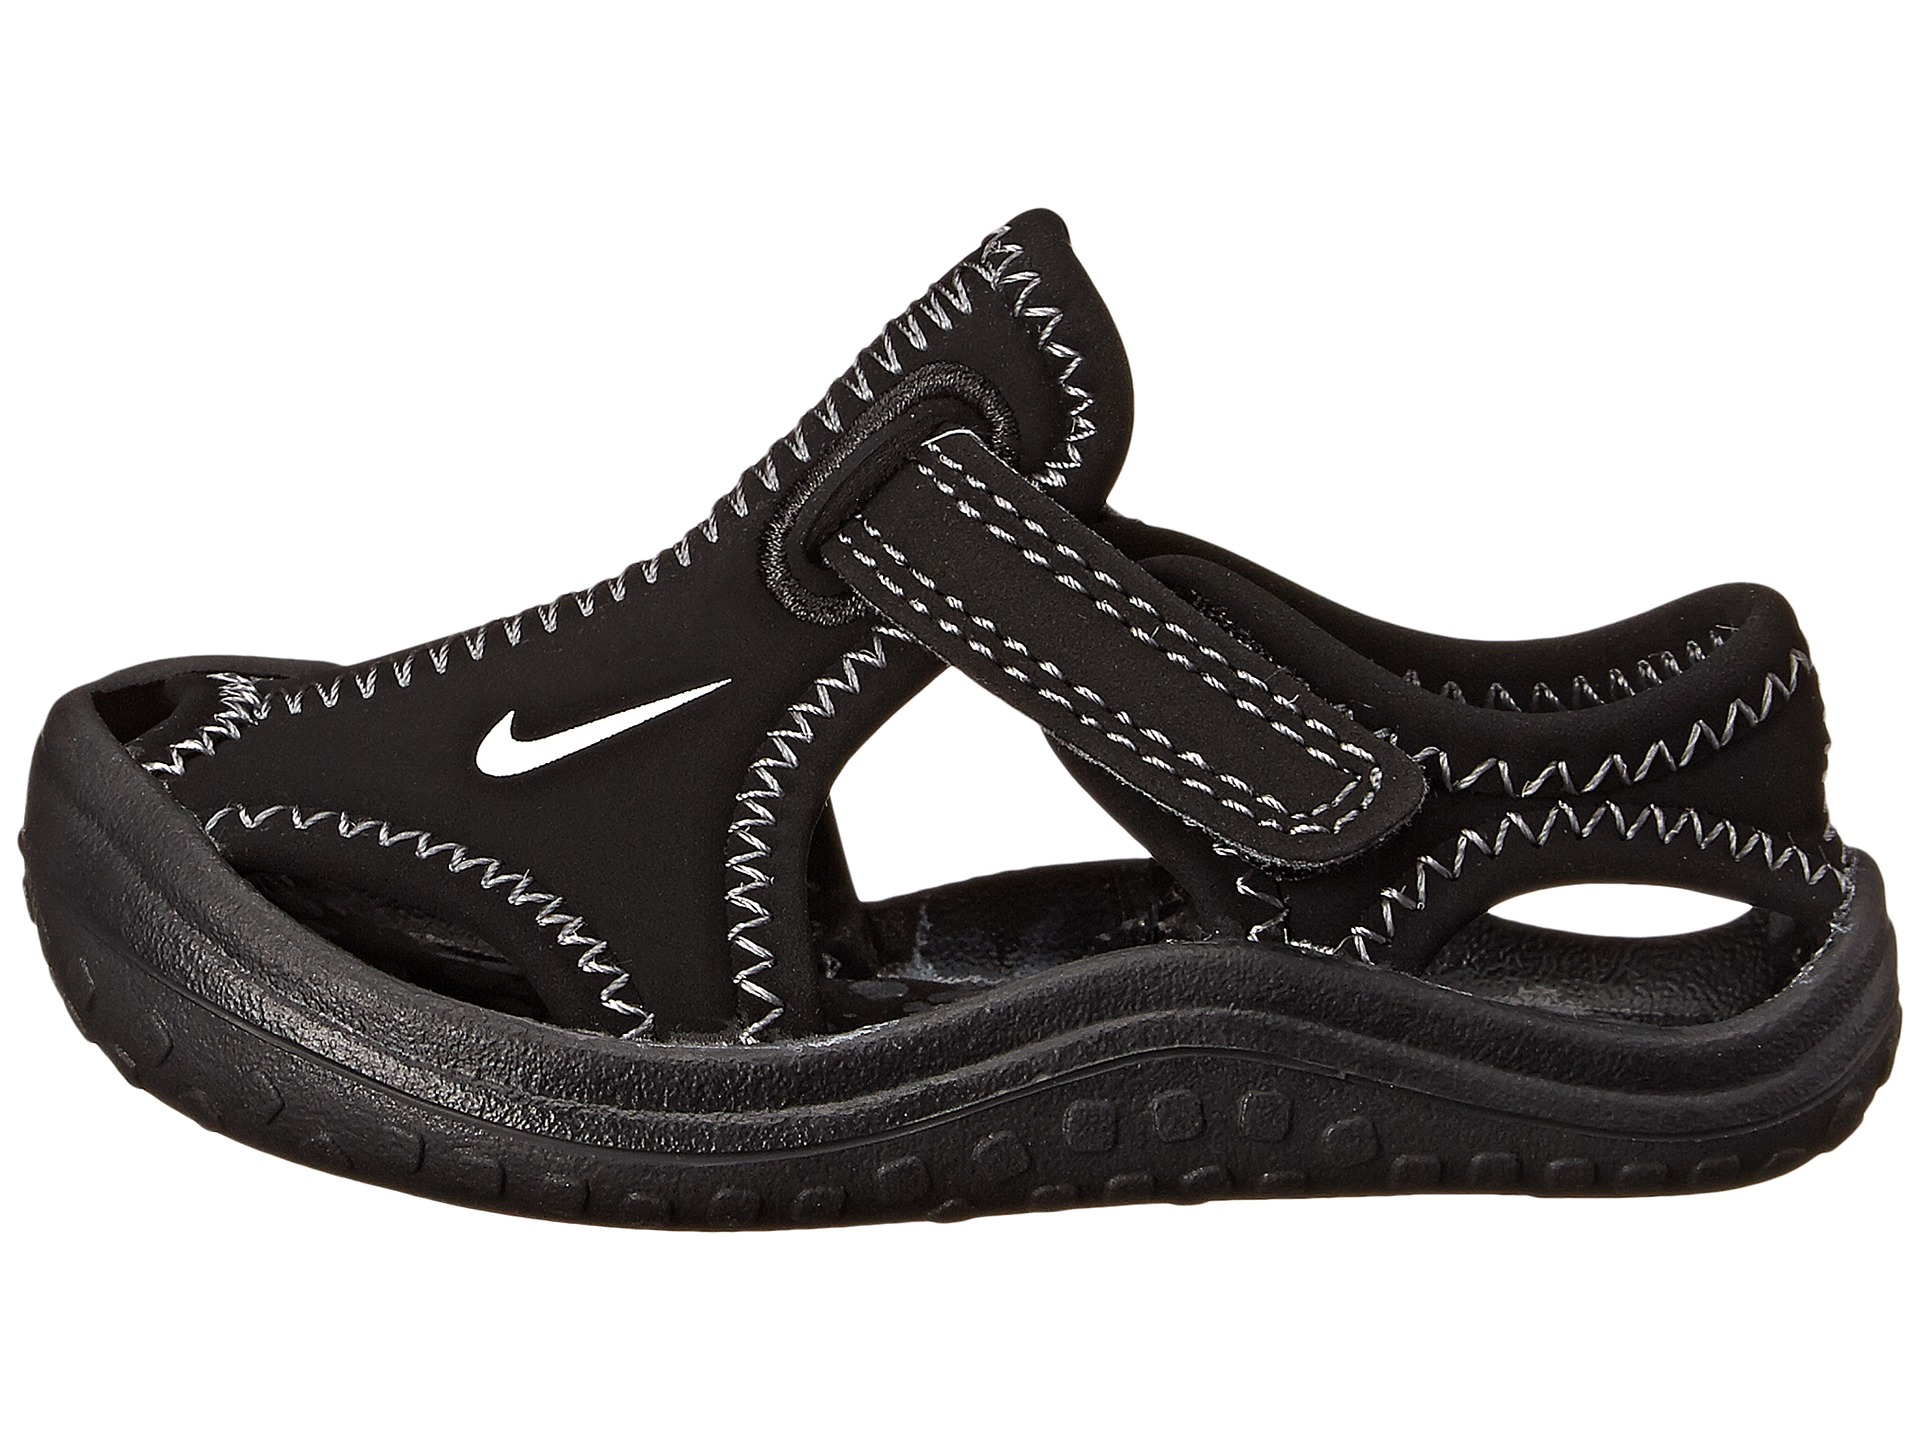 b9fccaa1f ... coupon code for nike kids sunray protect sandal black white dark grey  7c walmart 9f872 e9f65